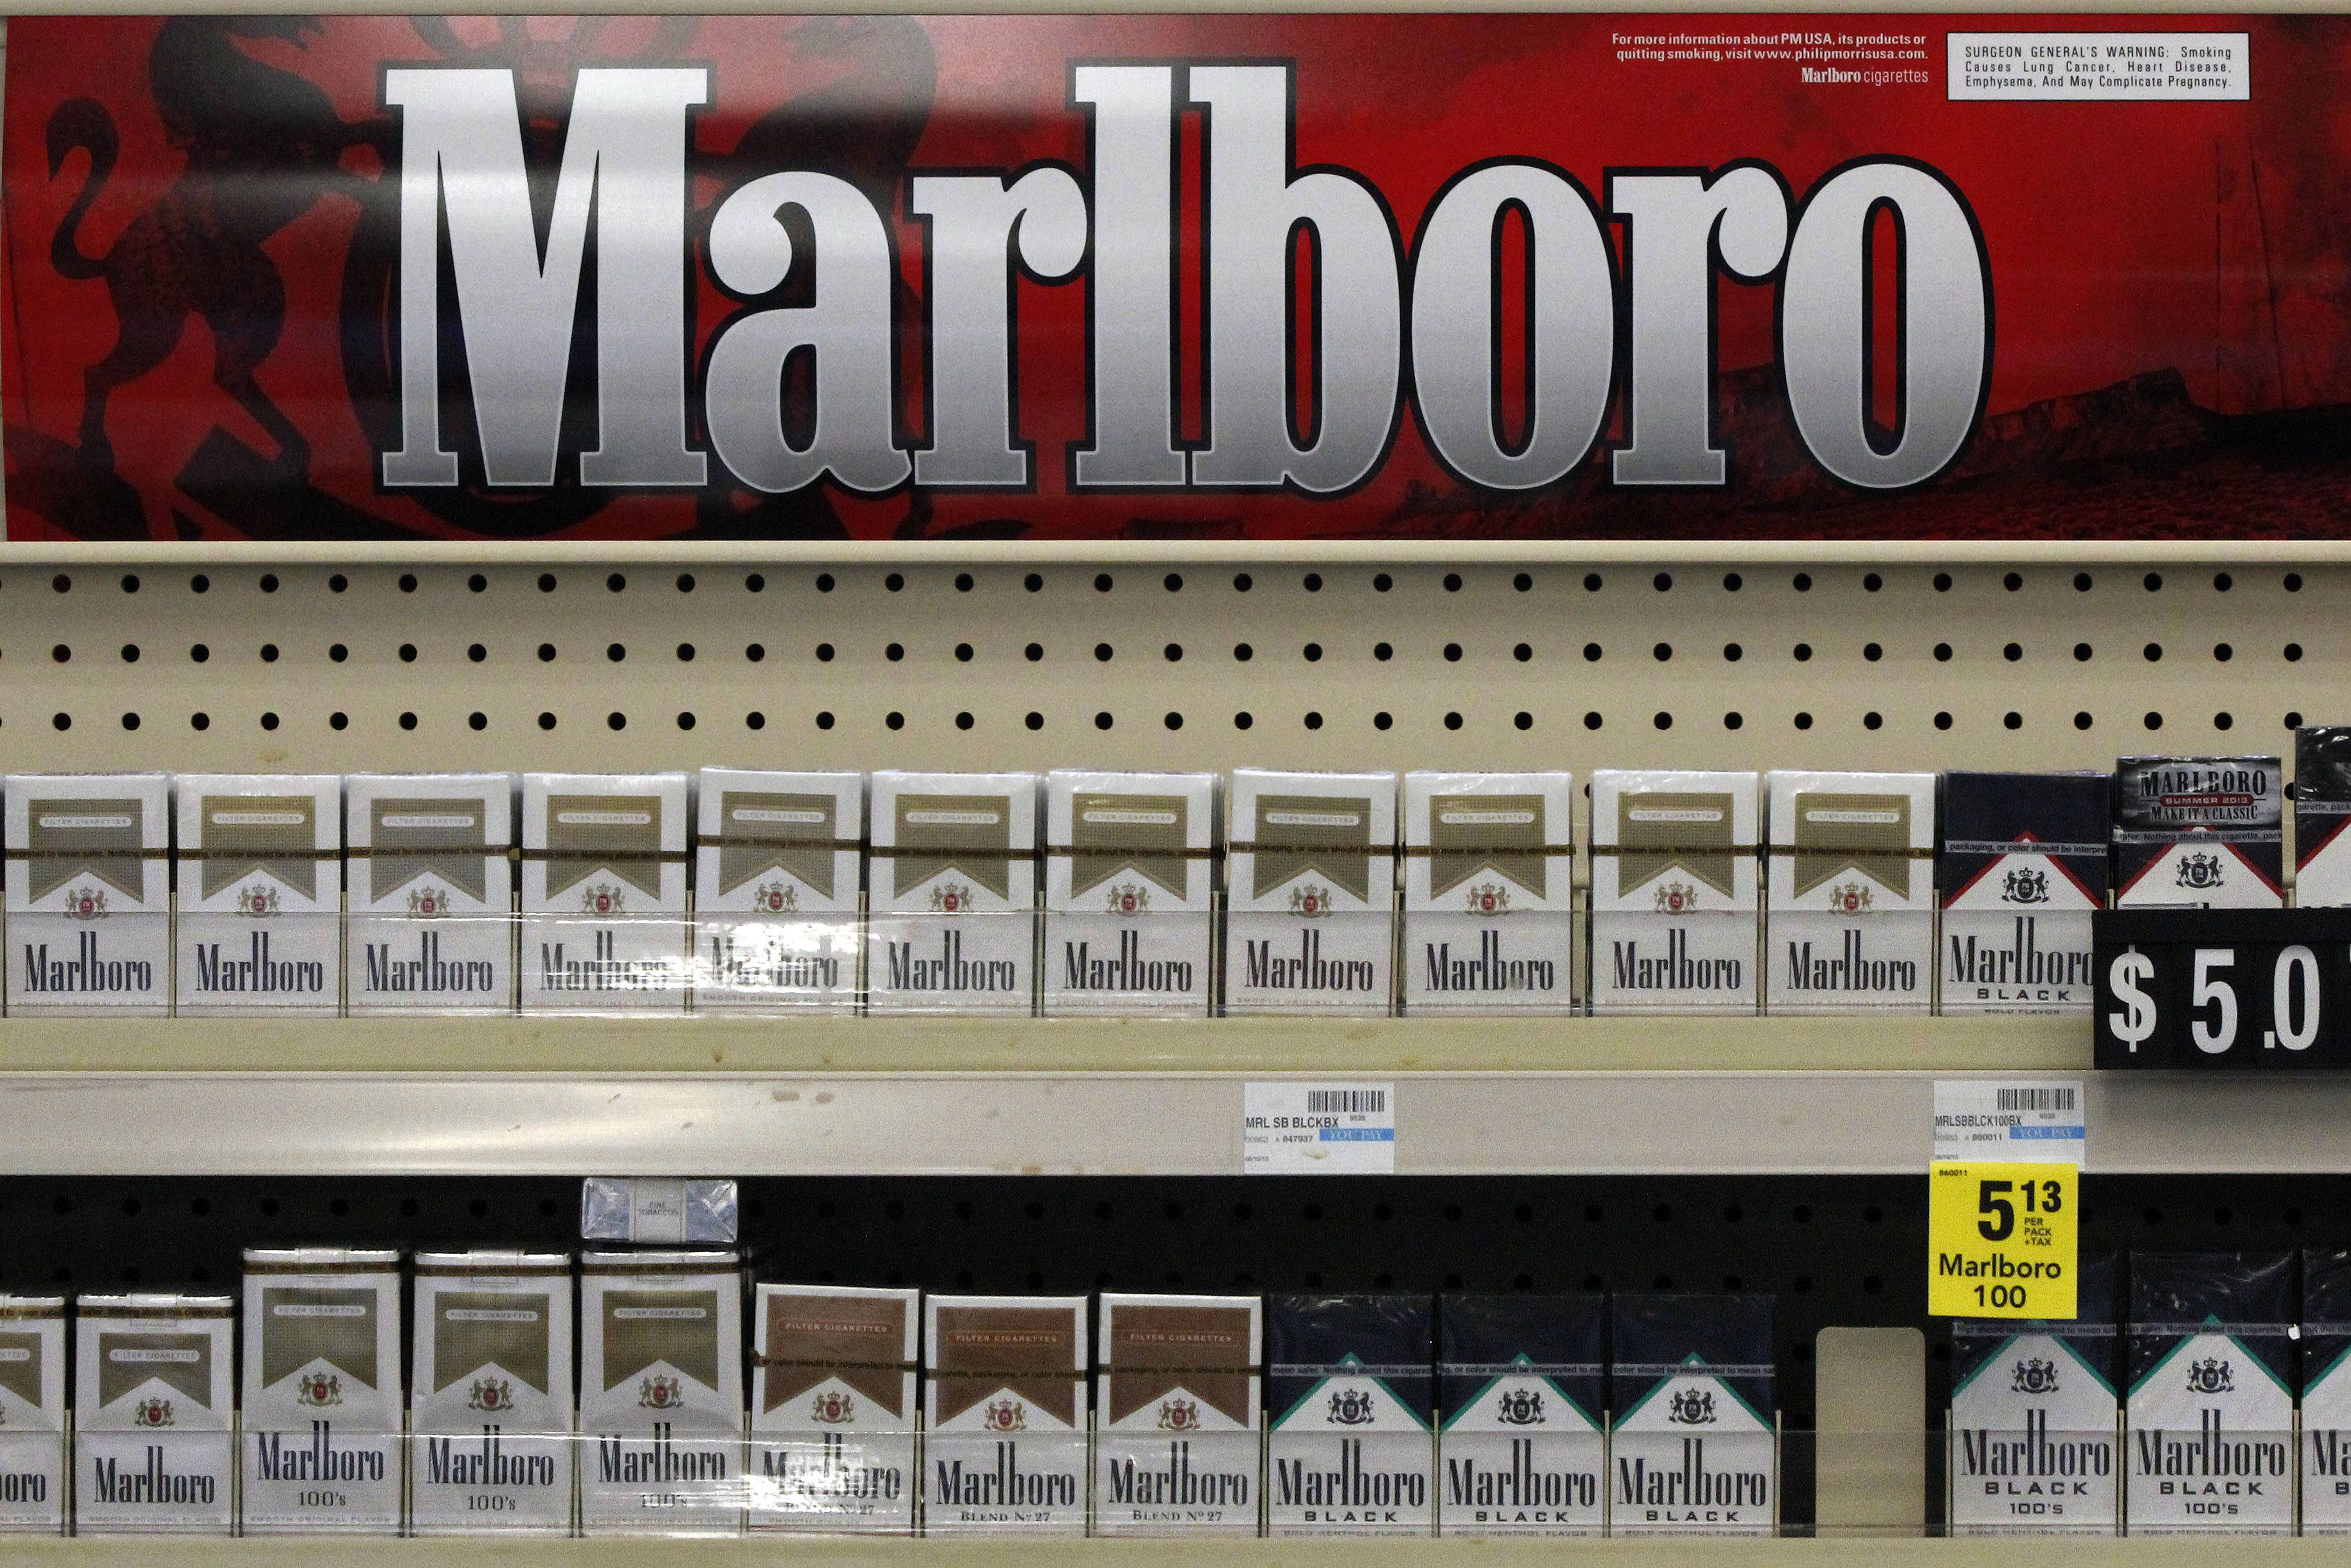 Marlboro cigarettes on display in a CVS store in Pittsburgh. Major retailers will be paying close attention to the sales numbers after CVS Caremark pulls tobacco from its shelves by October.